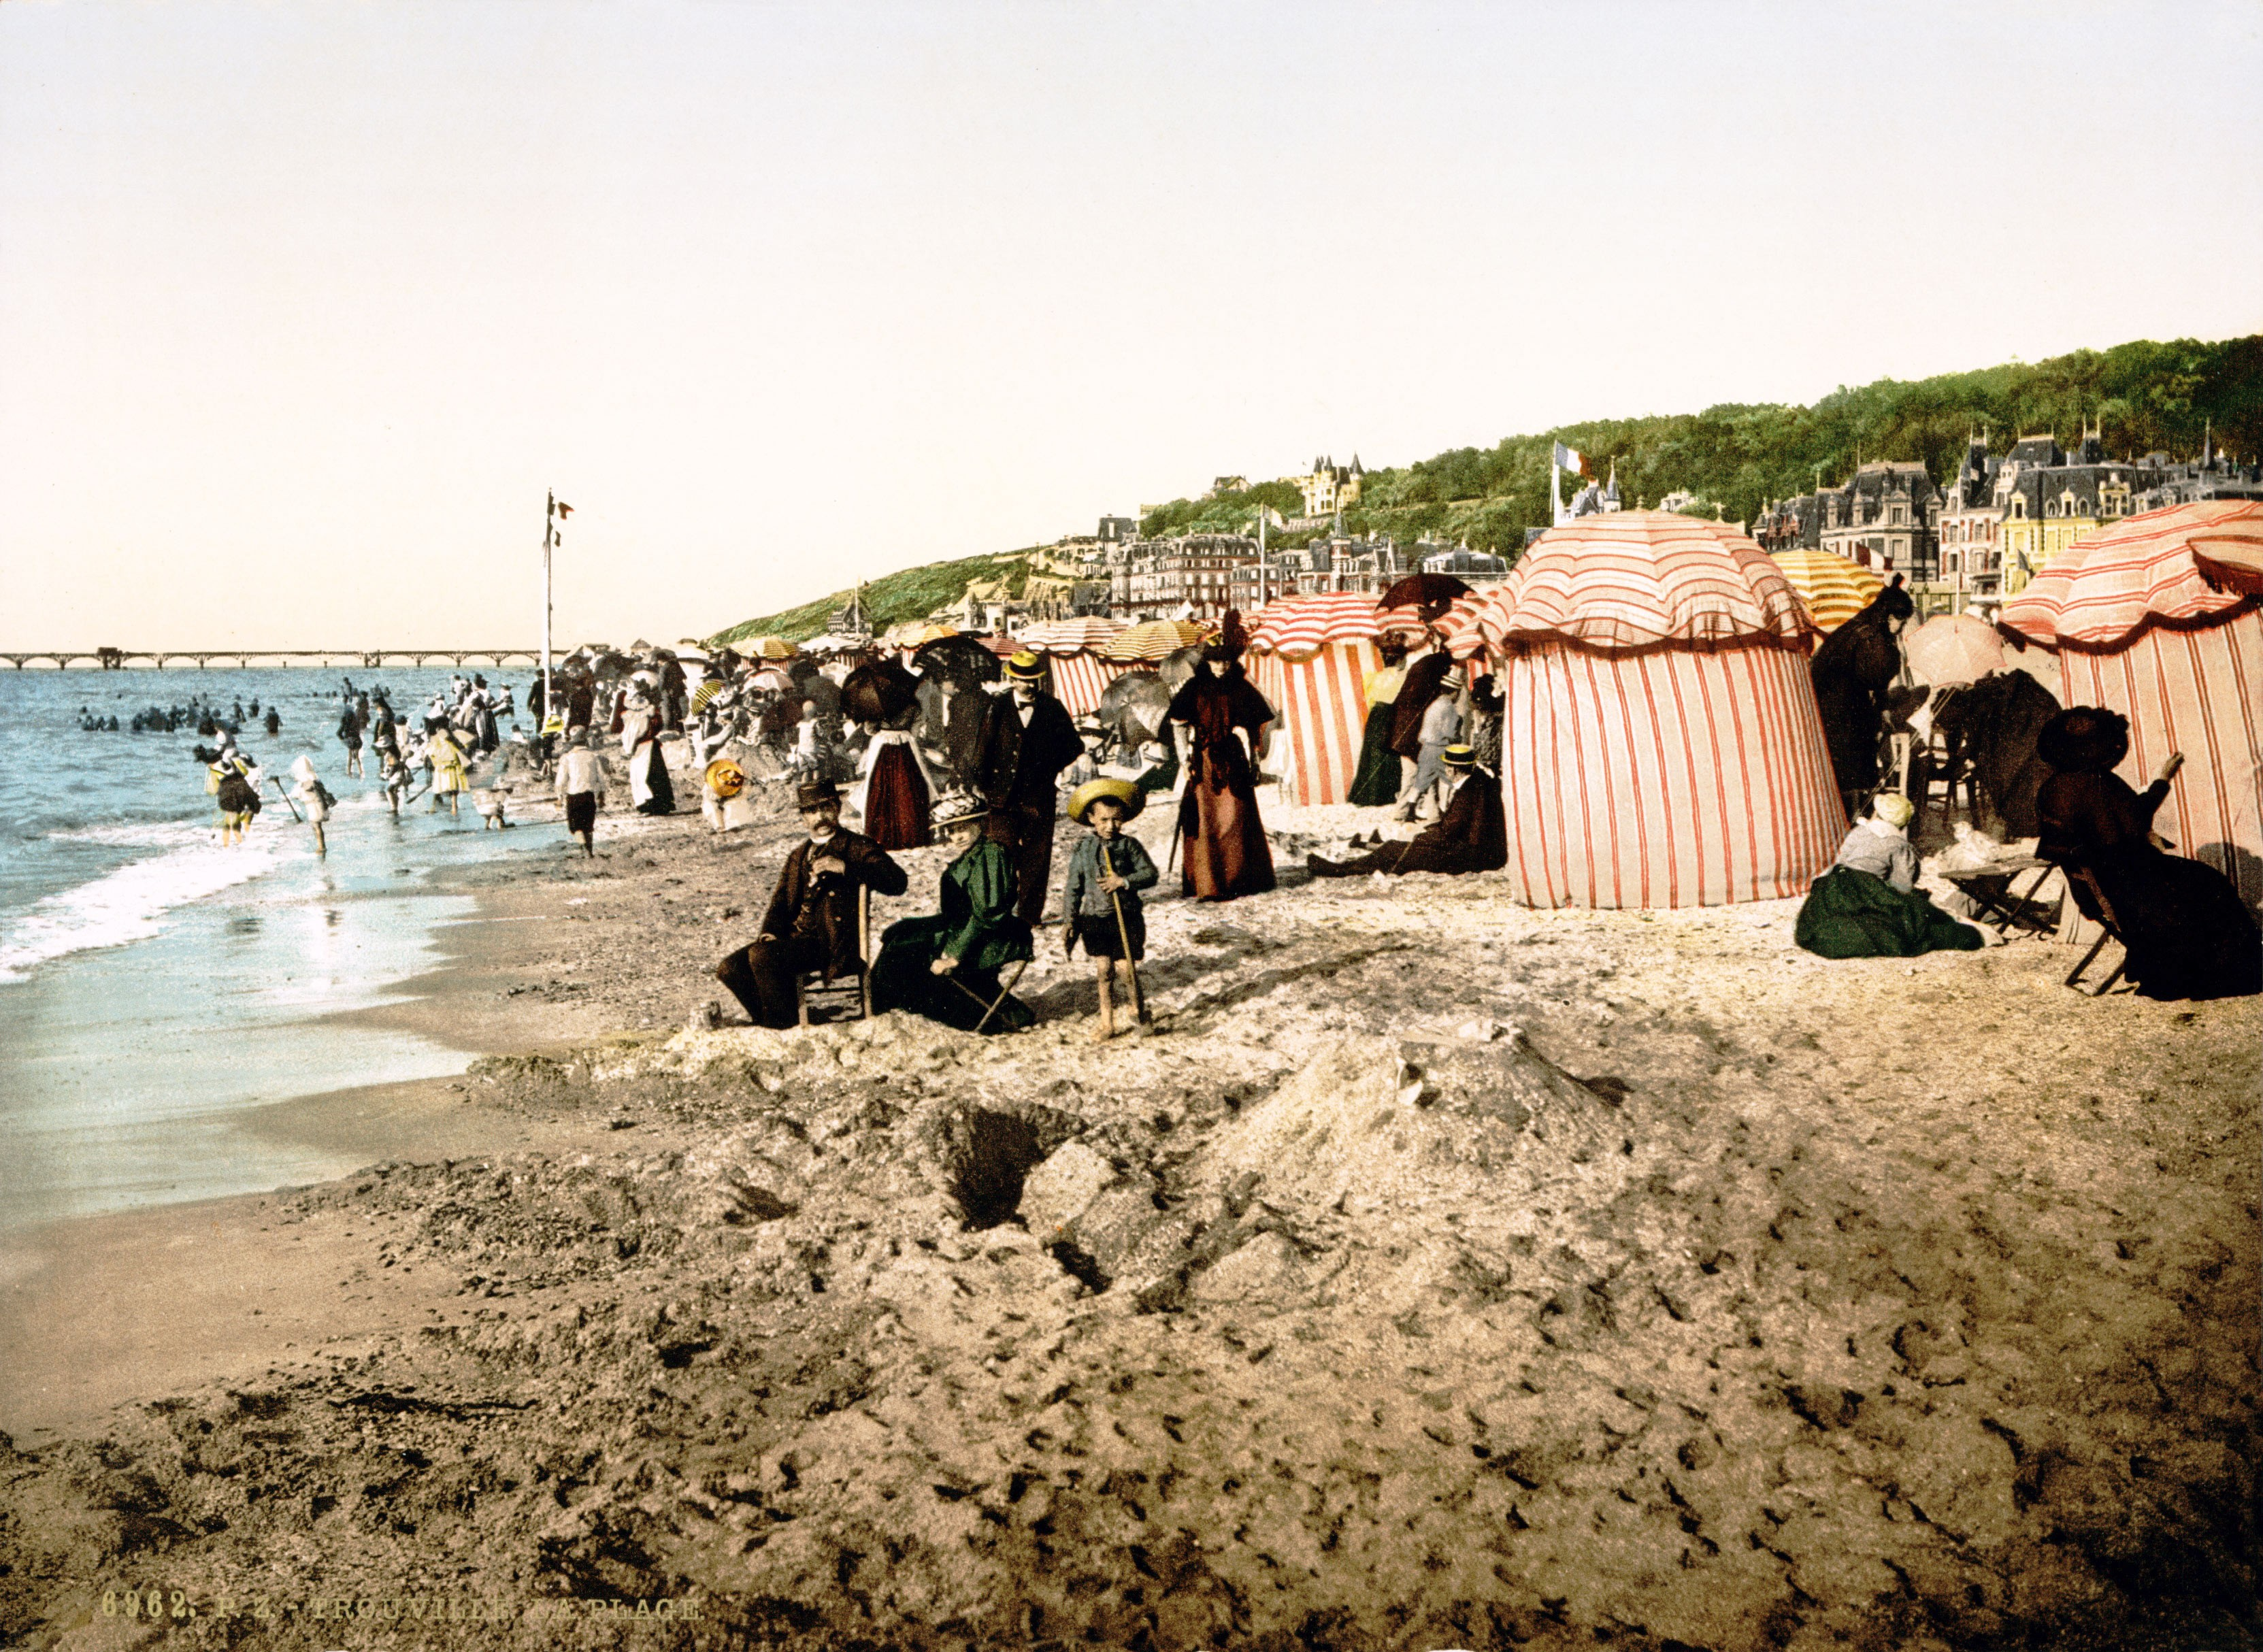 Badestrand in Trouville